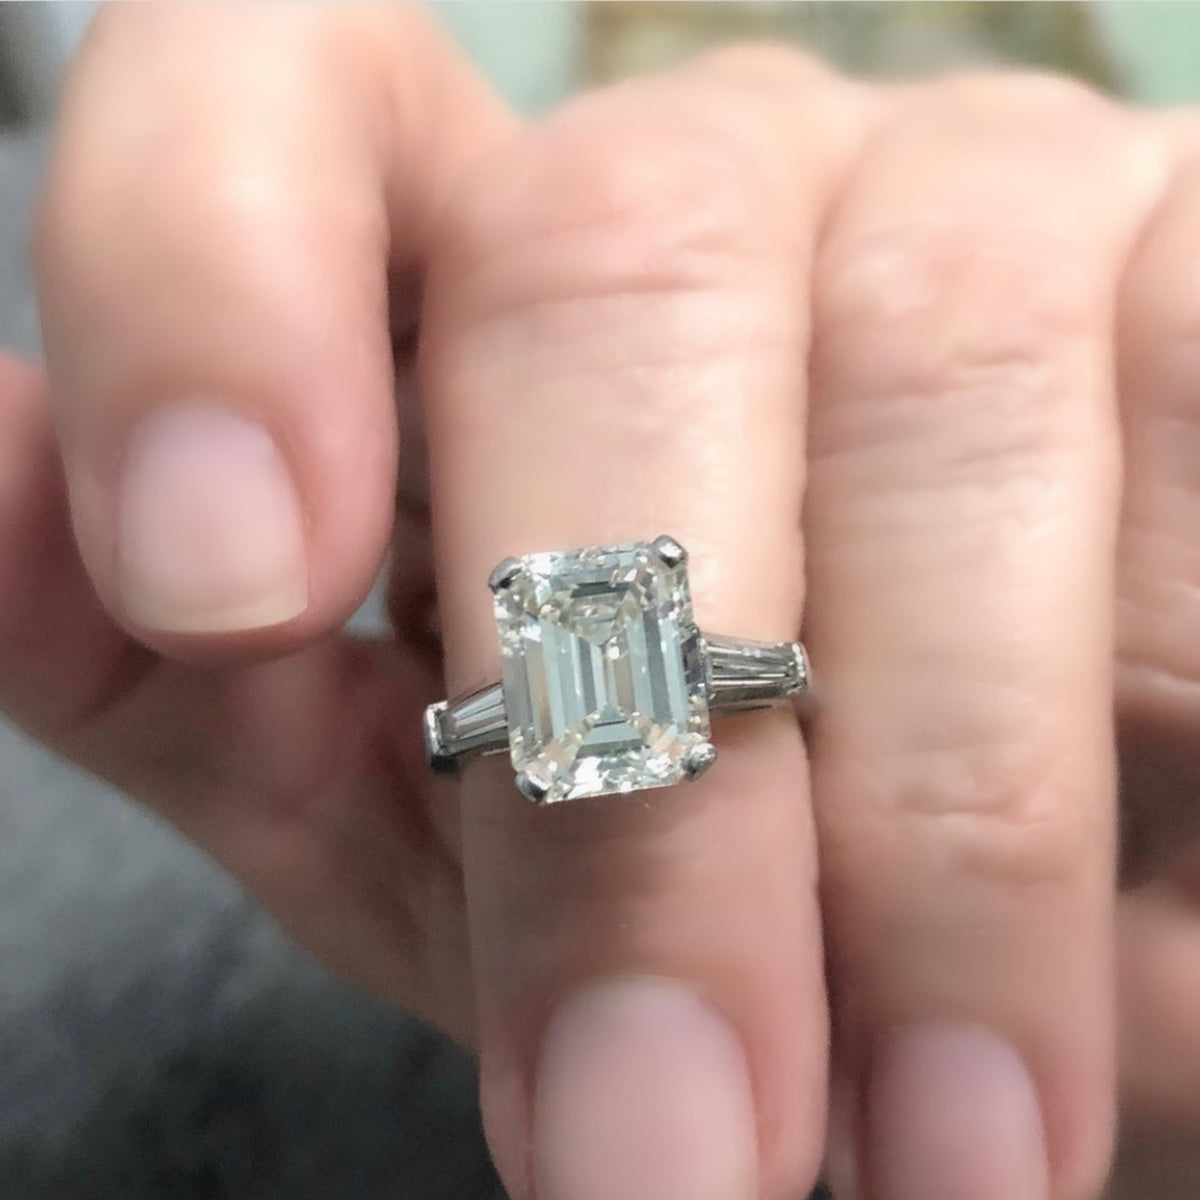 3.83 Carat Emerald-Cut Diamond Engagement Ring in Platinum with GIA Report model view